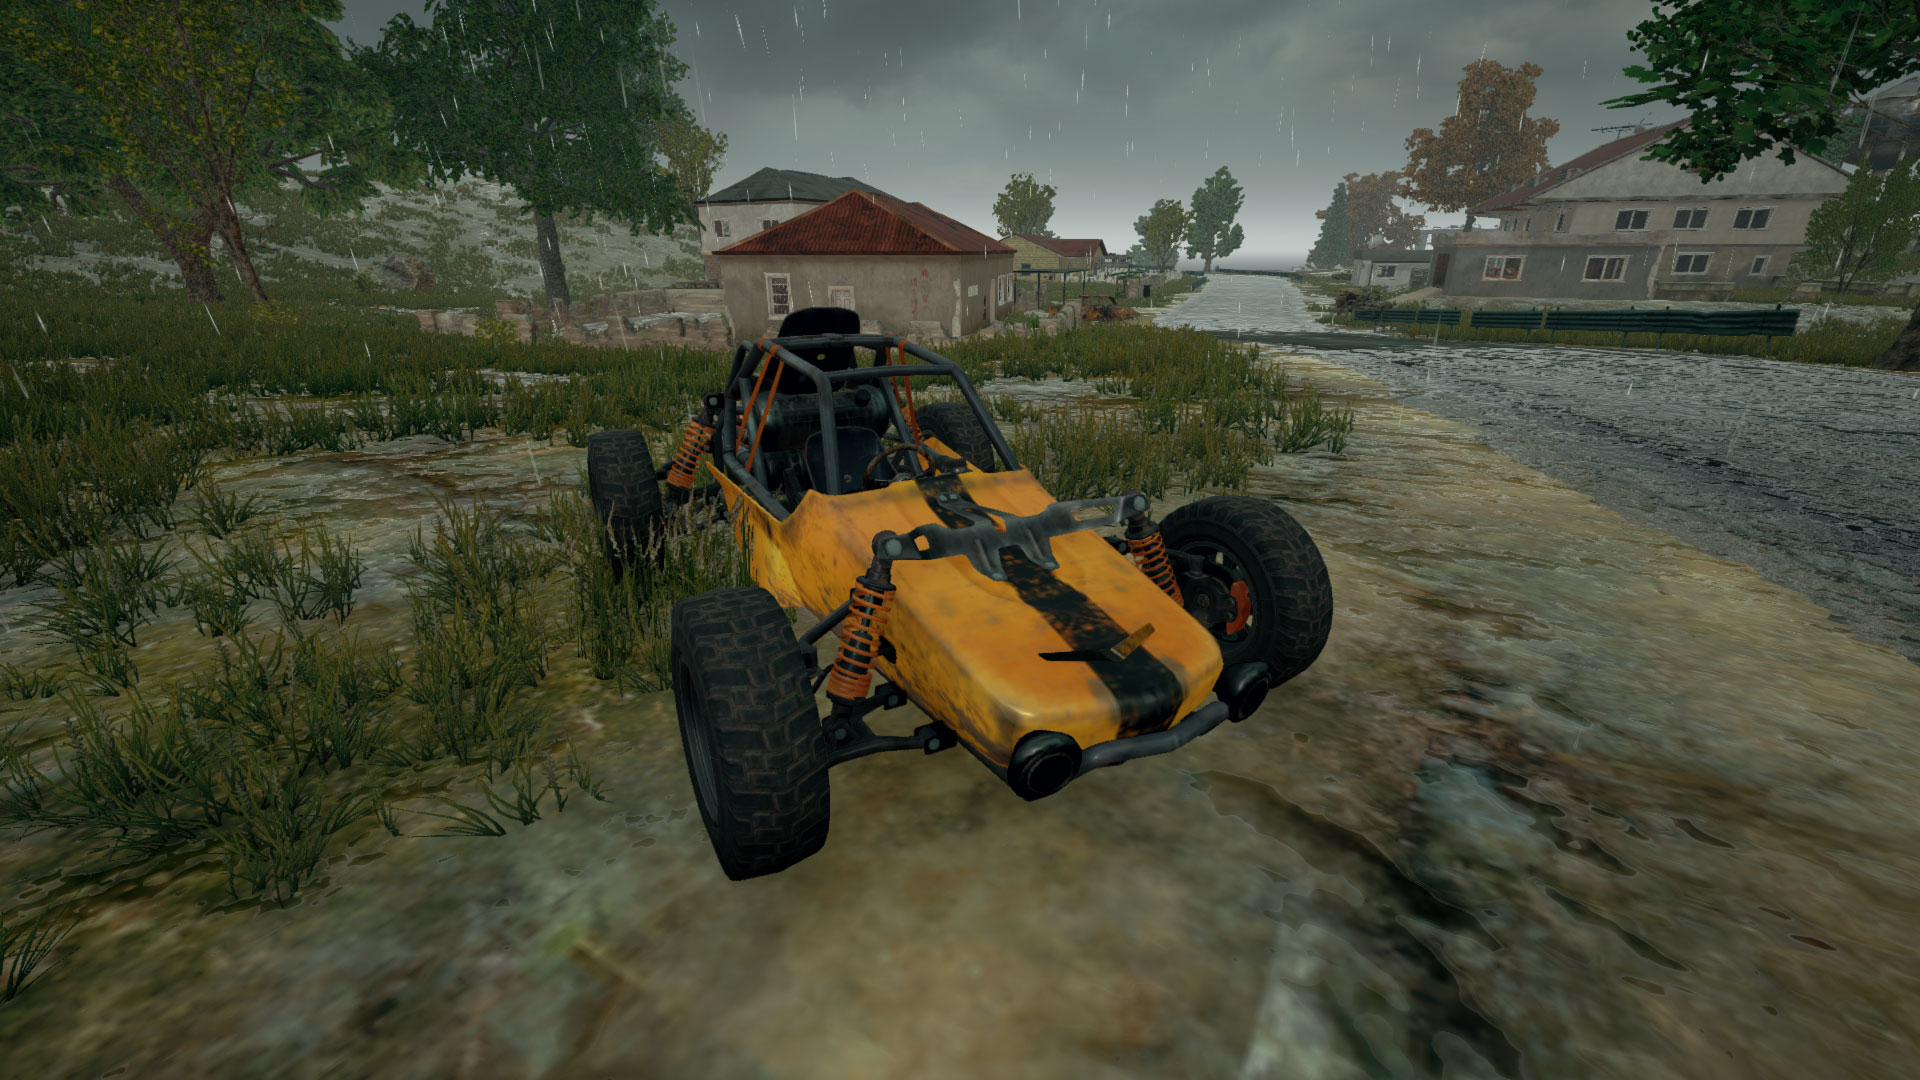 Picture of Buggy Vehicle from PUBG.